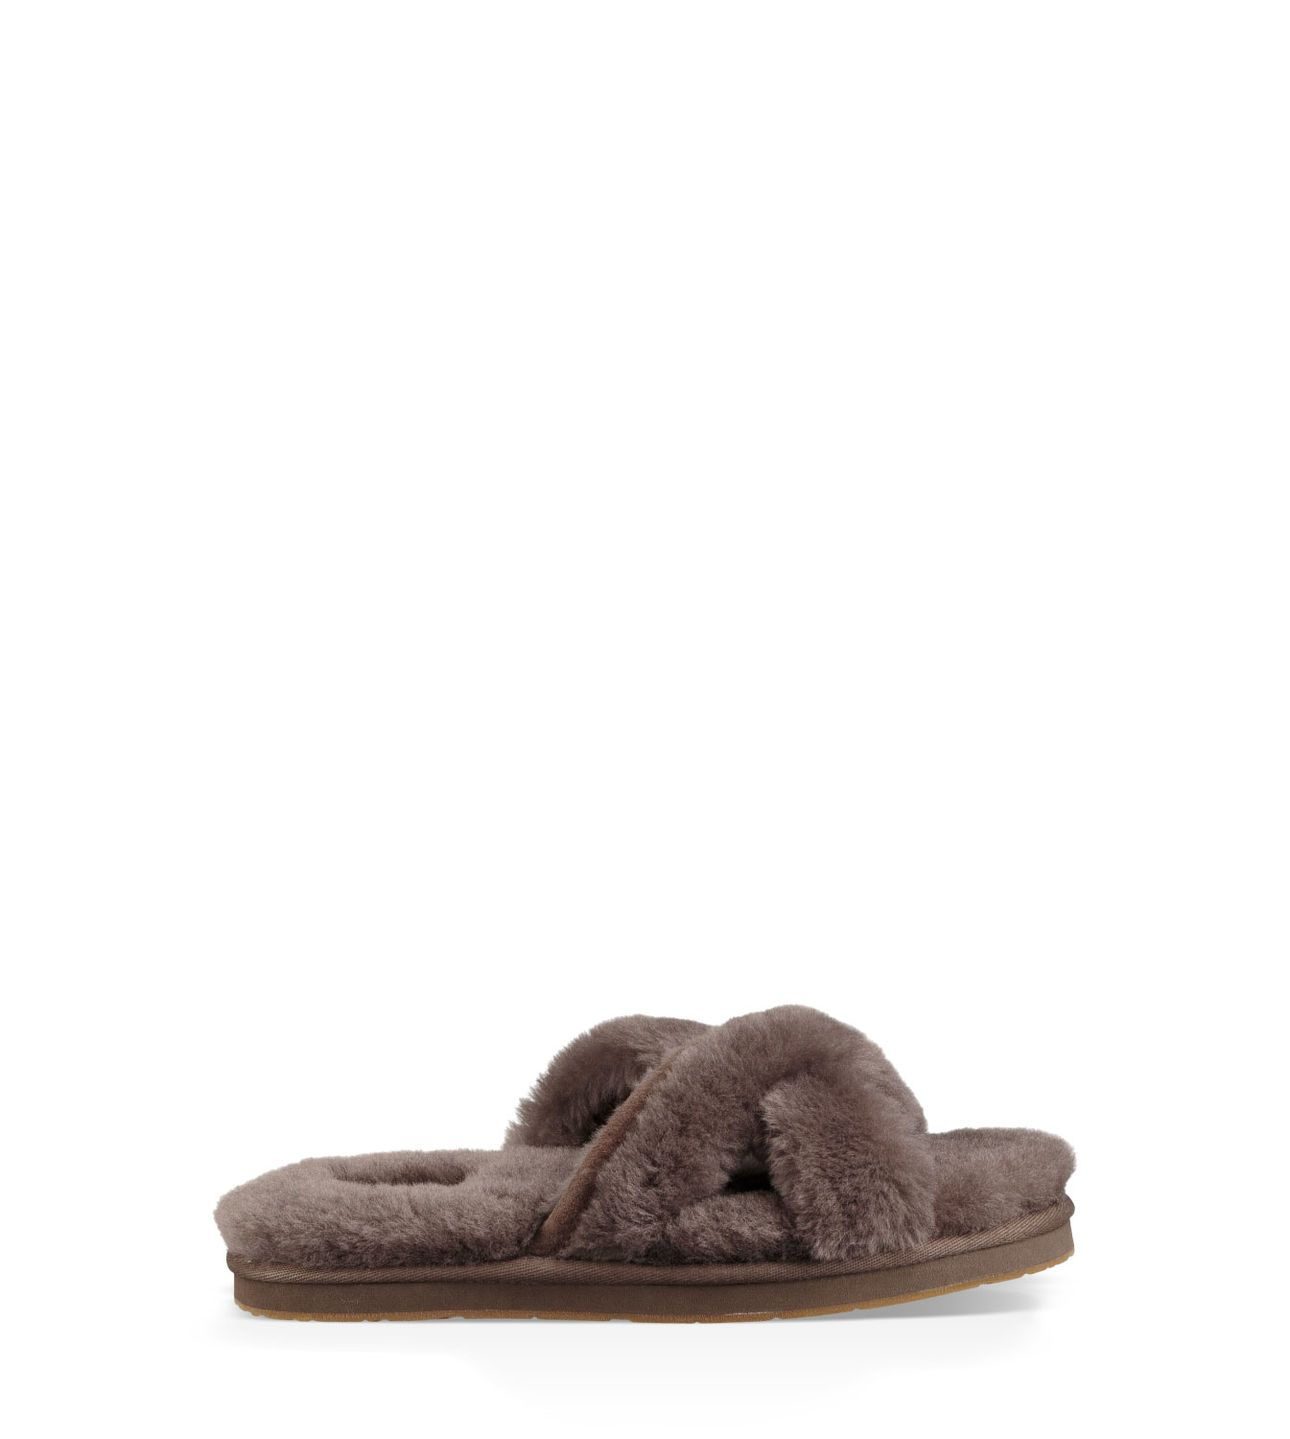 Shop The Abela Sandal Part Of The Official Ugg Women S Collection And Get Free Shipping And Returns On Ugg Com Uggs Slippers Womens Uggs